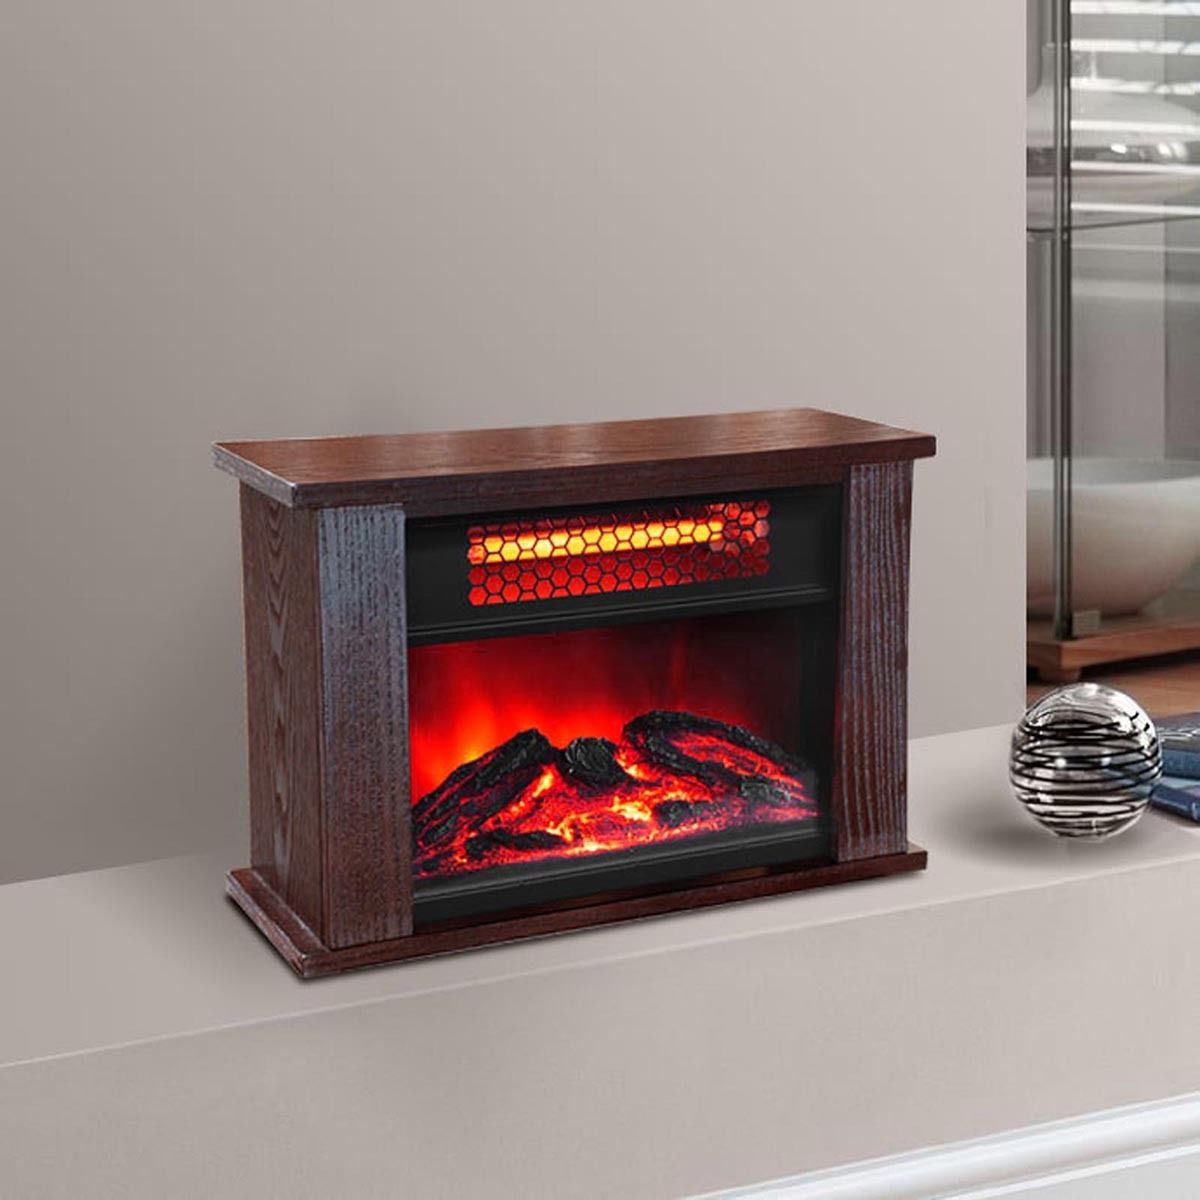 Best ideas about Infrared Fireplace Heater . Save or Pin 750 Watt Infrared Mini Fireplace Heater Now.